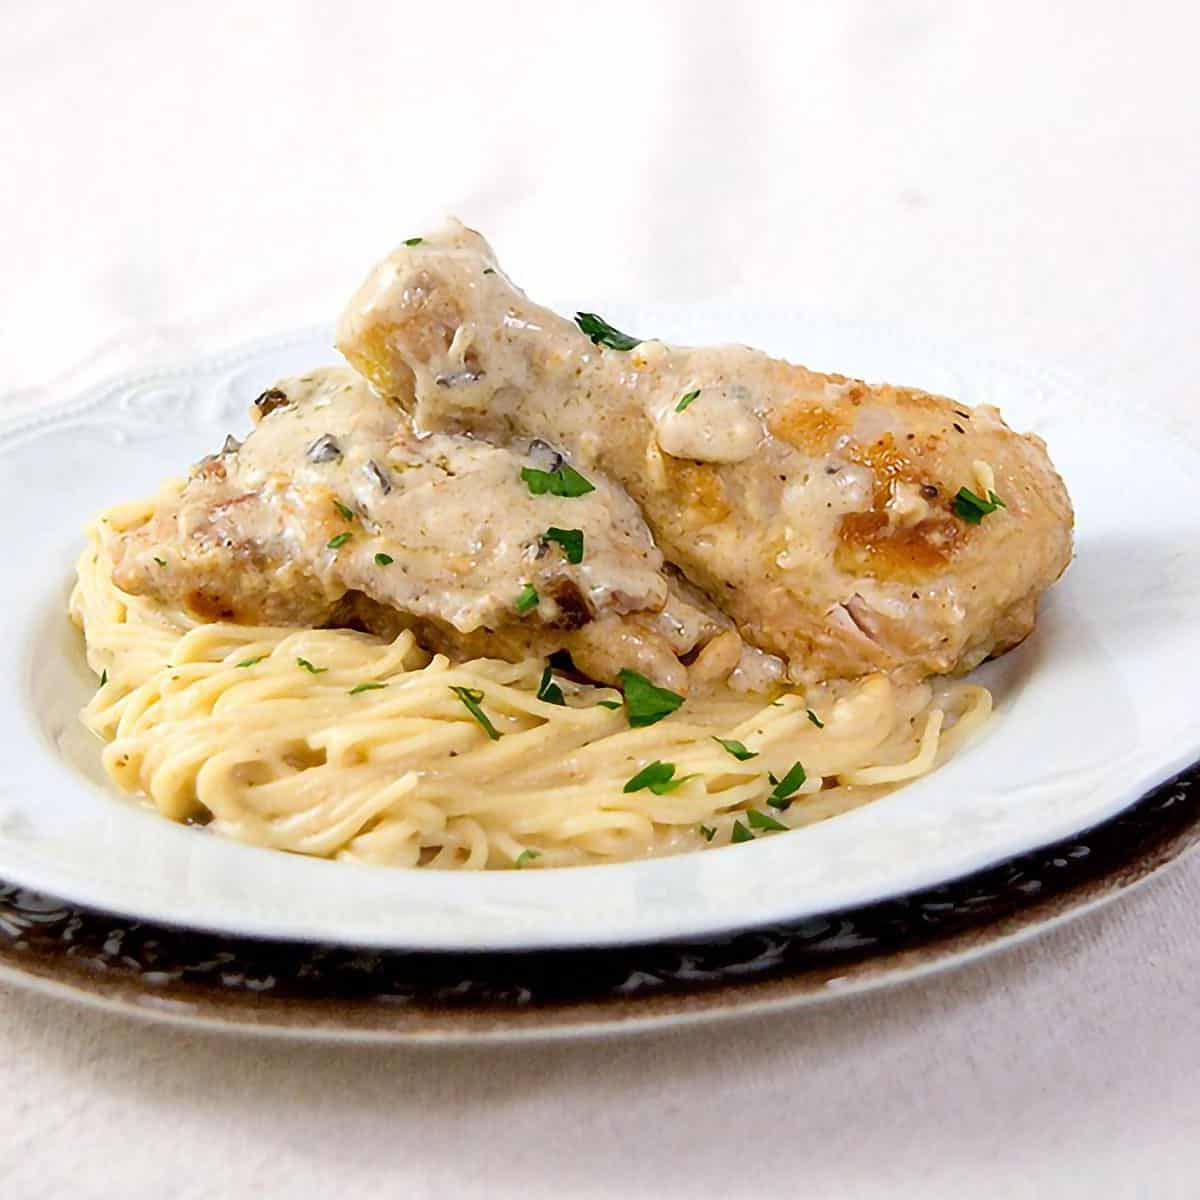 Delicious Baked Parmesan Chicken with a creamy mushroom and Parmesan sauce over angel hair pasta is a simple and delicious dinner that the entire family will enjoy.  @NevrEnoughThyme https://www.lanascooking.com/baked-parmesan-chicken